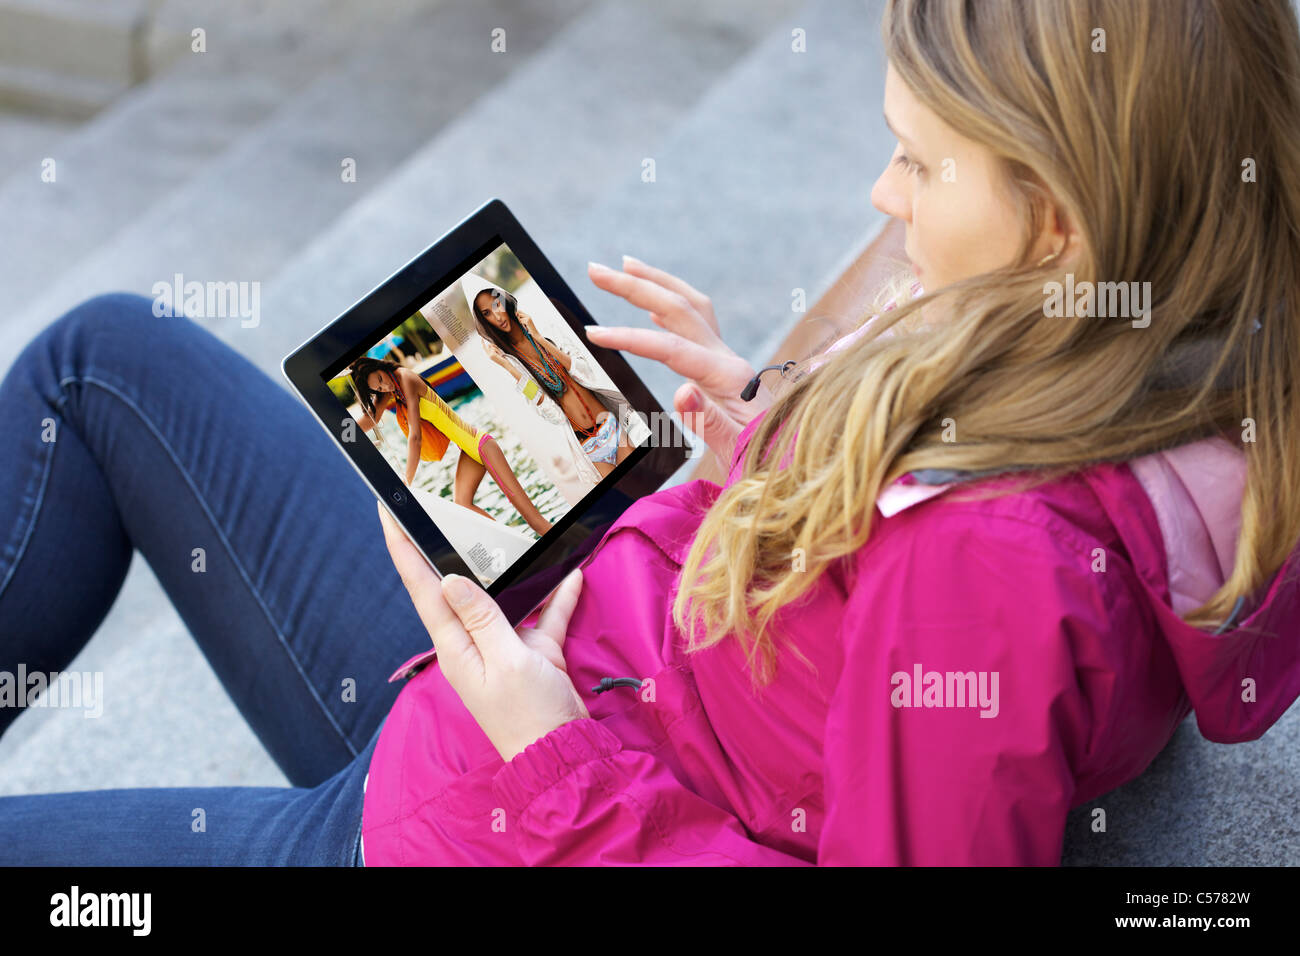 Close up view of young woman reading e-magazine using Zinio online magazine app on an iPad 2 - Stock Image